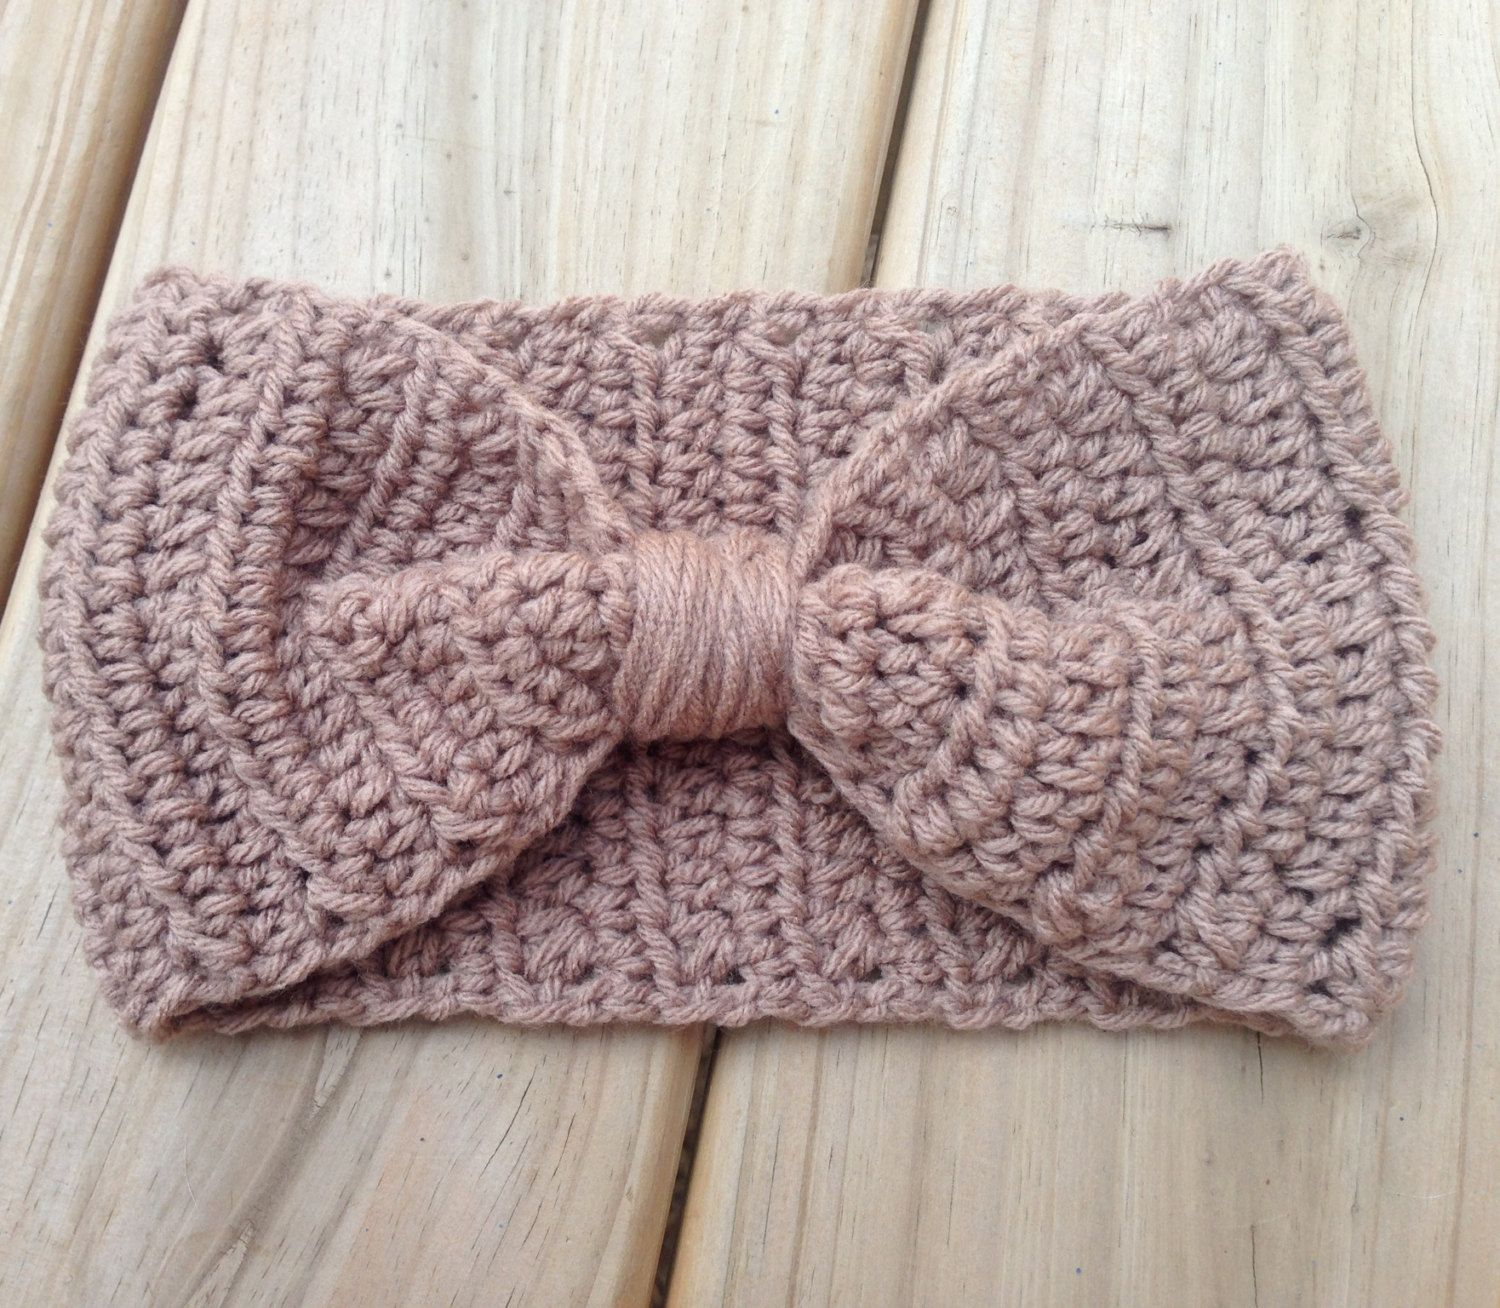 Womens ear warmer turban style headband cinched bow like crochet womens ear warmer turban style headband cinched bow like crochet earwarmer headband head wrap any color bankloansurffo Choice Image